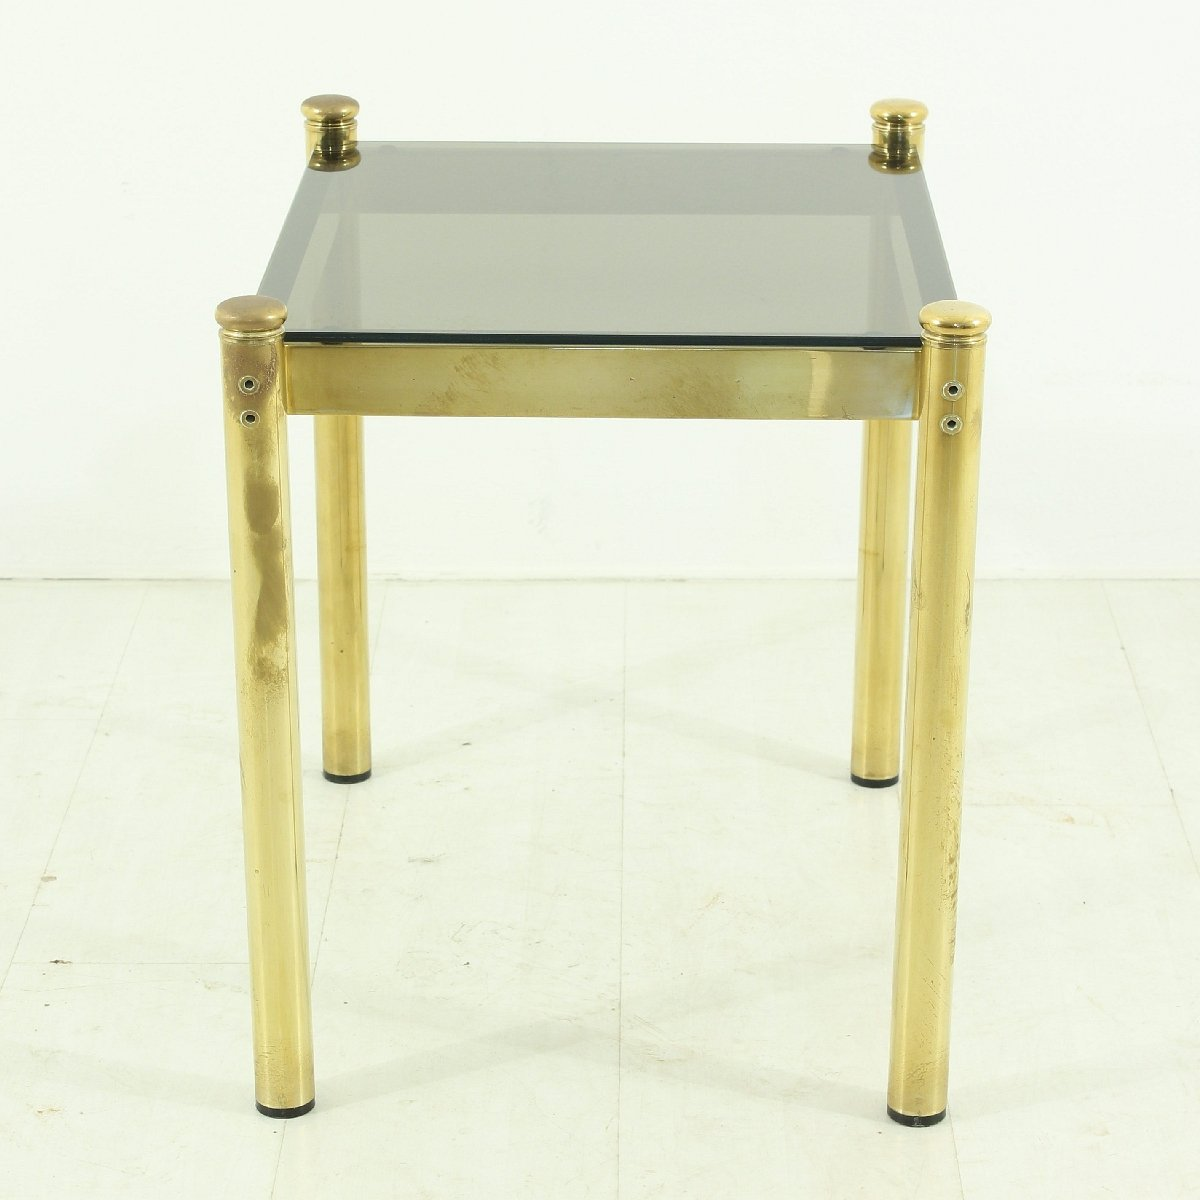 Vintage Brass Coffee Table With Smoked Glass Top For Sale At Pamono